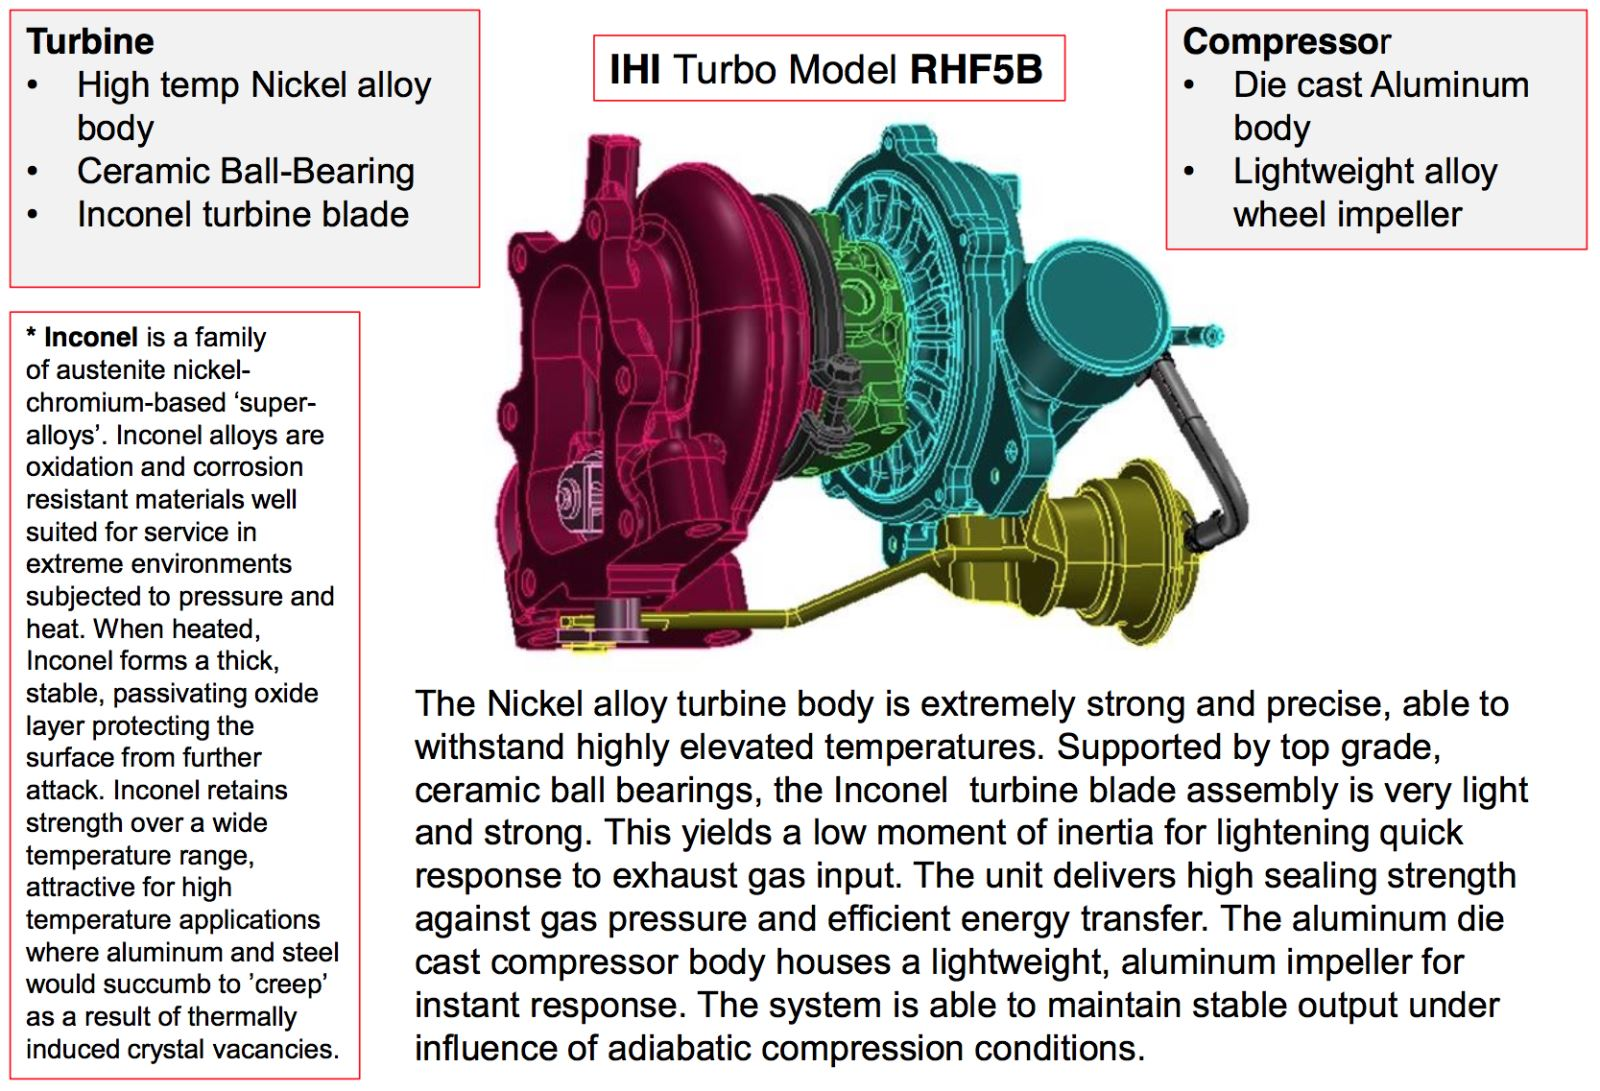 Yamaha 2017 Everything You Need To Know About The Sidewinder M Tx On This Turbocharger Diagram Can See How Impeller Connects Turbo Unit